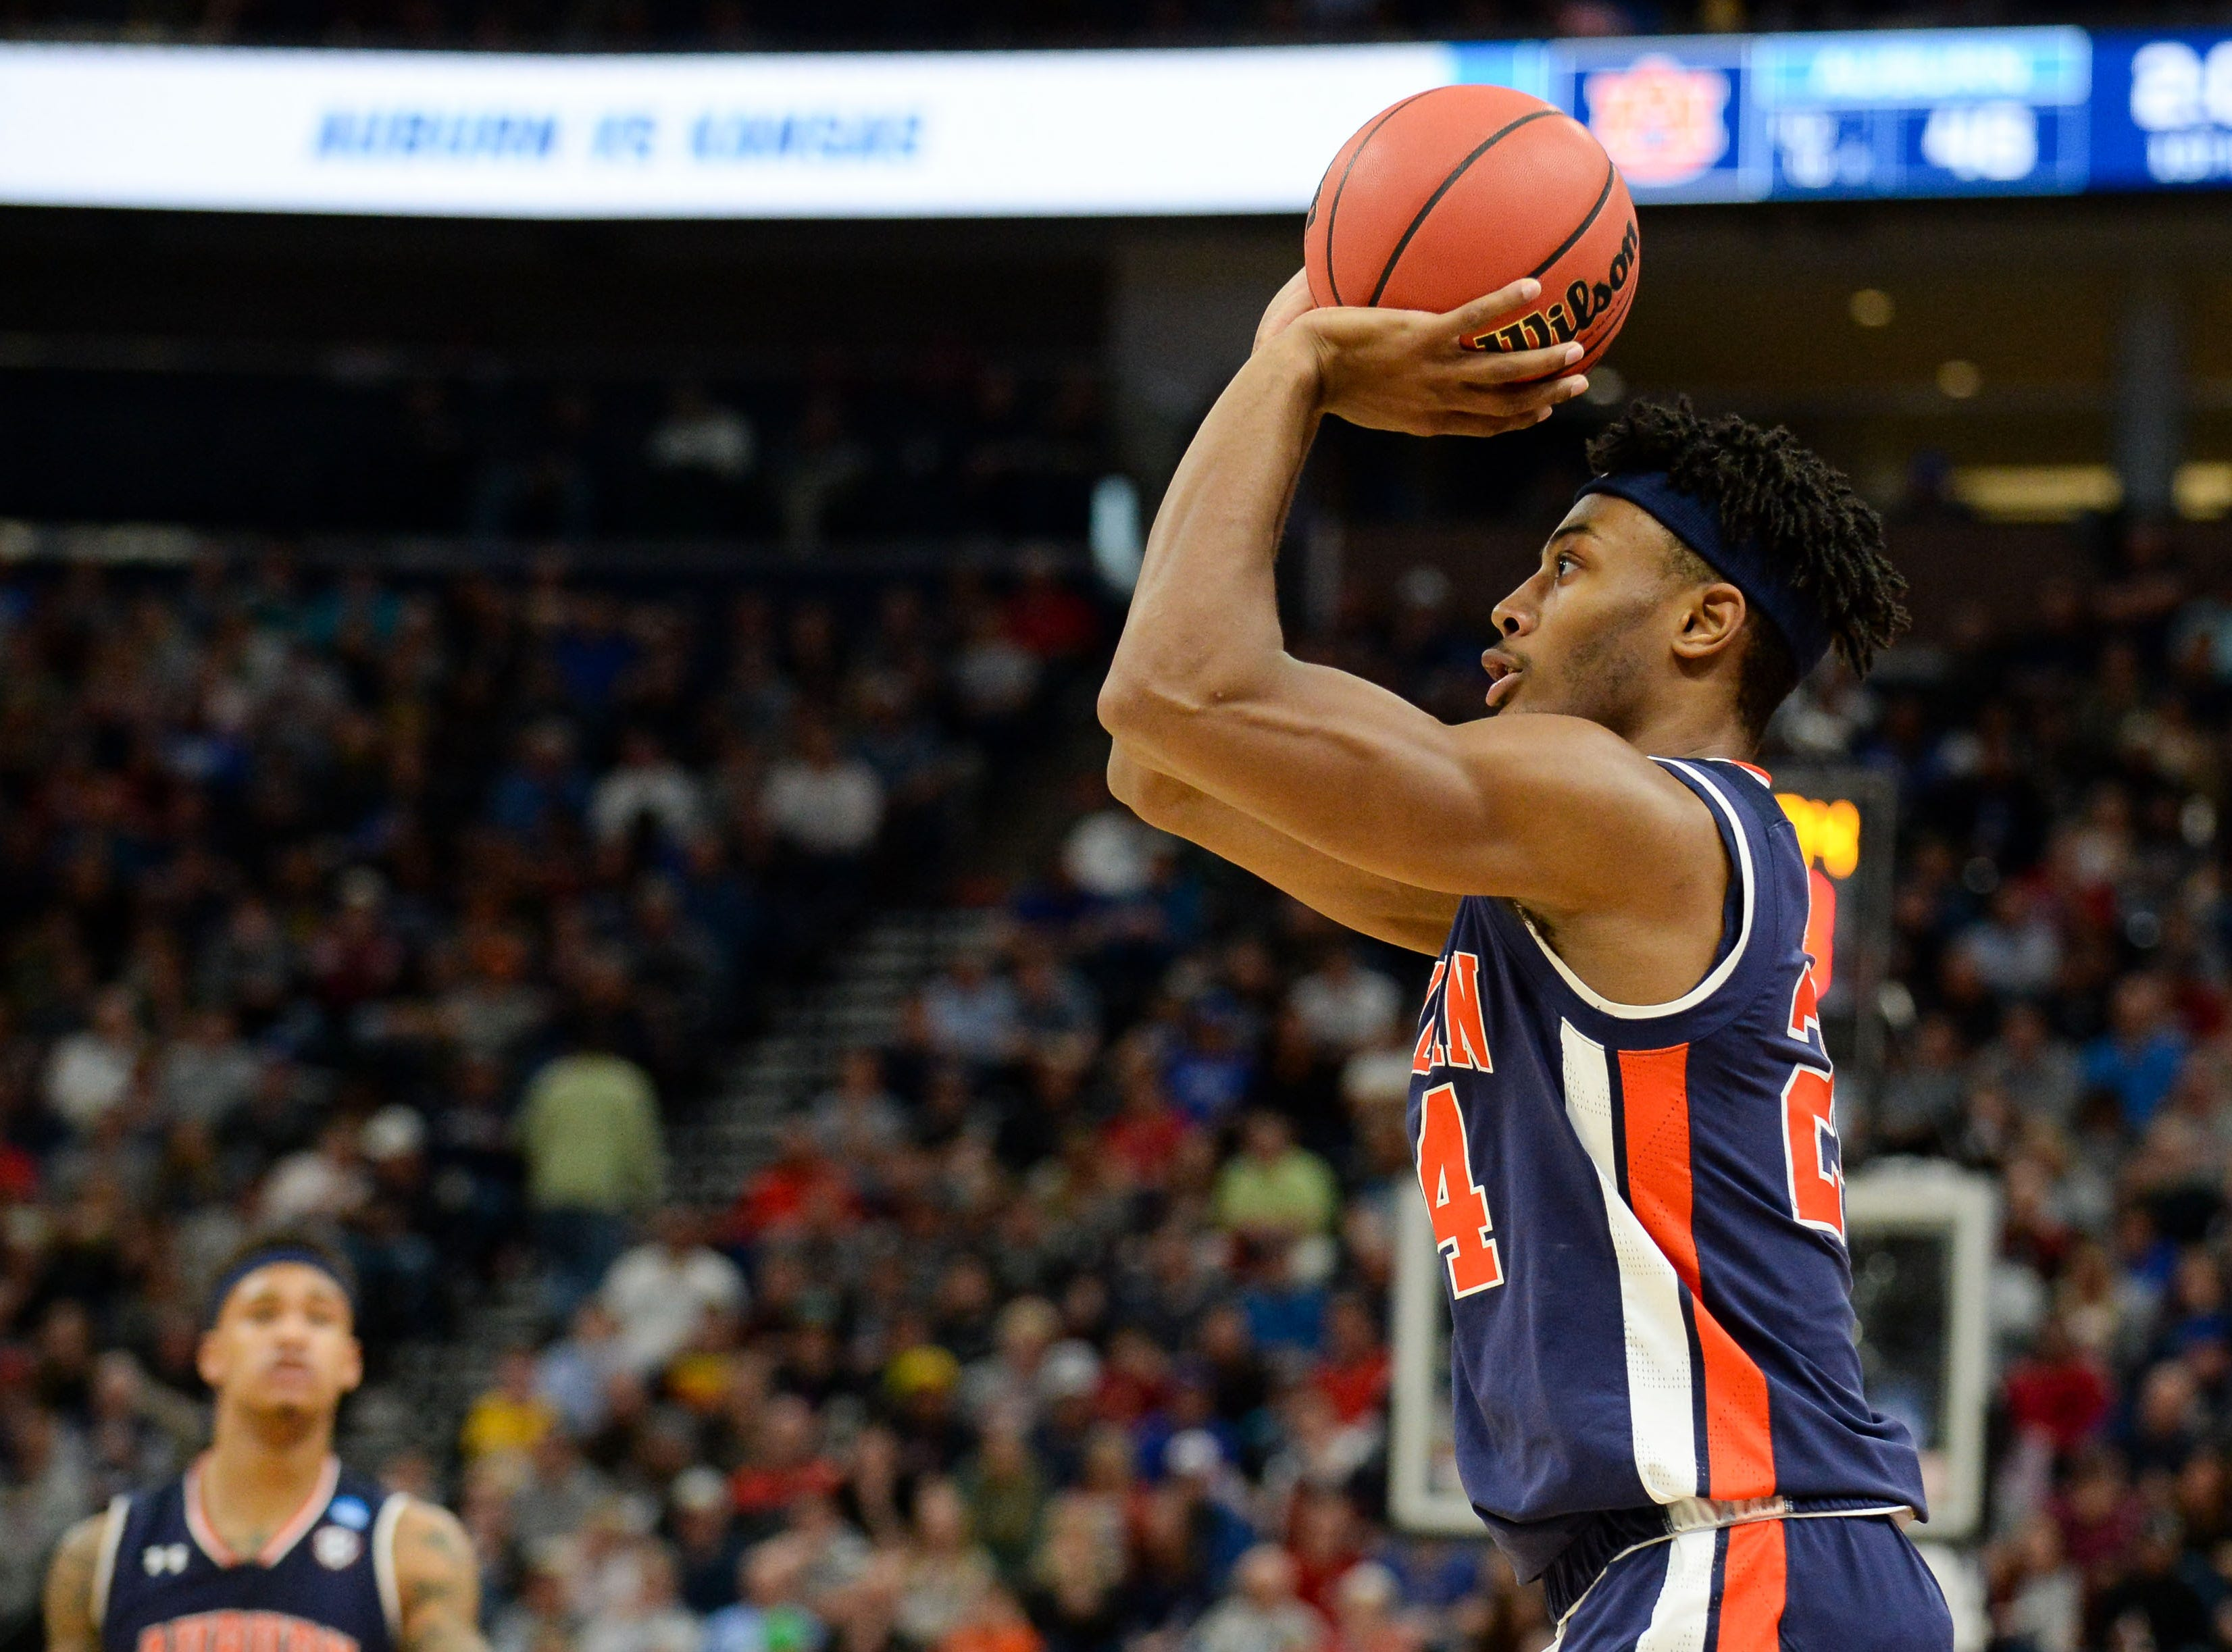 Mar 23, 2019; Salt Lake City, UT, USA; Auburn Tigers forward Anfernee McLemore (24) shoots a three-pointer during the first half in the second round of the 2019 NCAA Tournament against the Kansas Jayhawks at Vivint Smart Home Arena. Mandatory Credit: Gary A. Vasquez-USA TODAY Sports